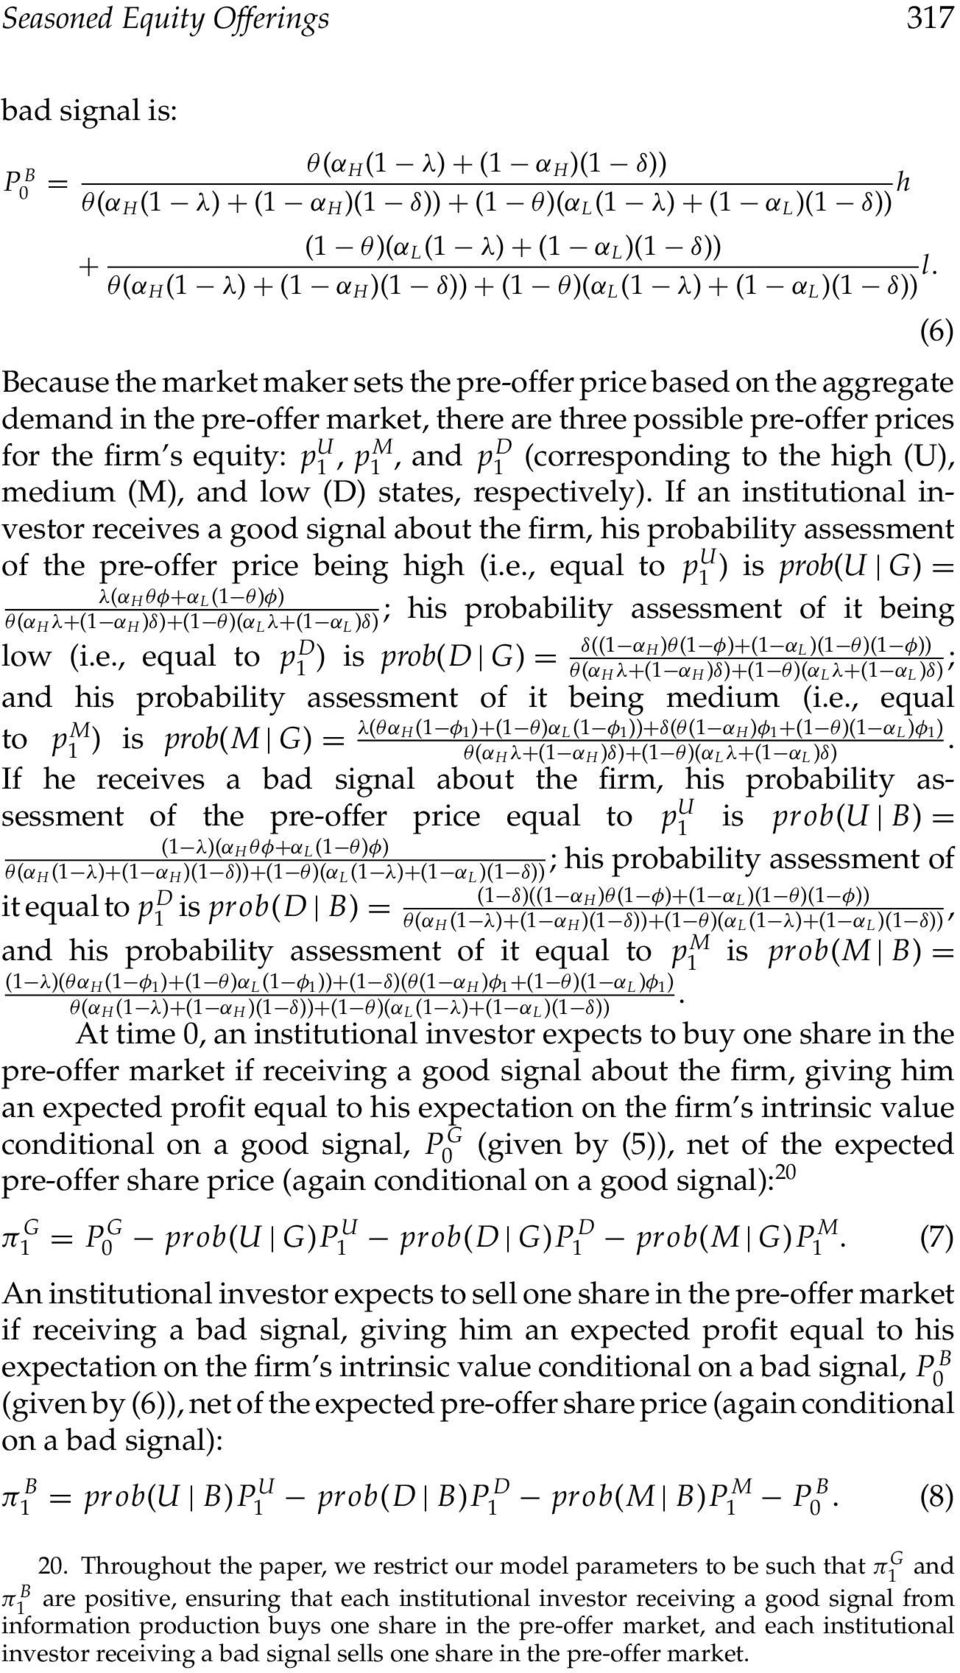 (6) Because the market maker sets the pre-offer price based on the aggregate demand in the pre-offer market, there are three possible pre-offer prices for the firm s equity: p1 U, pm 1,andpD 1